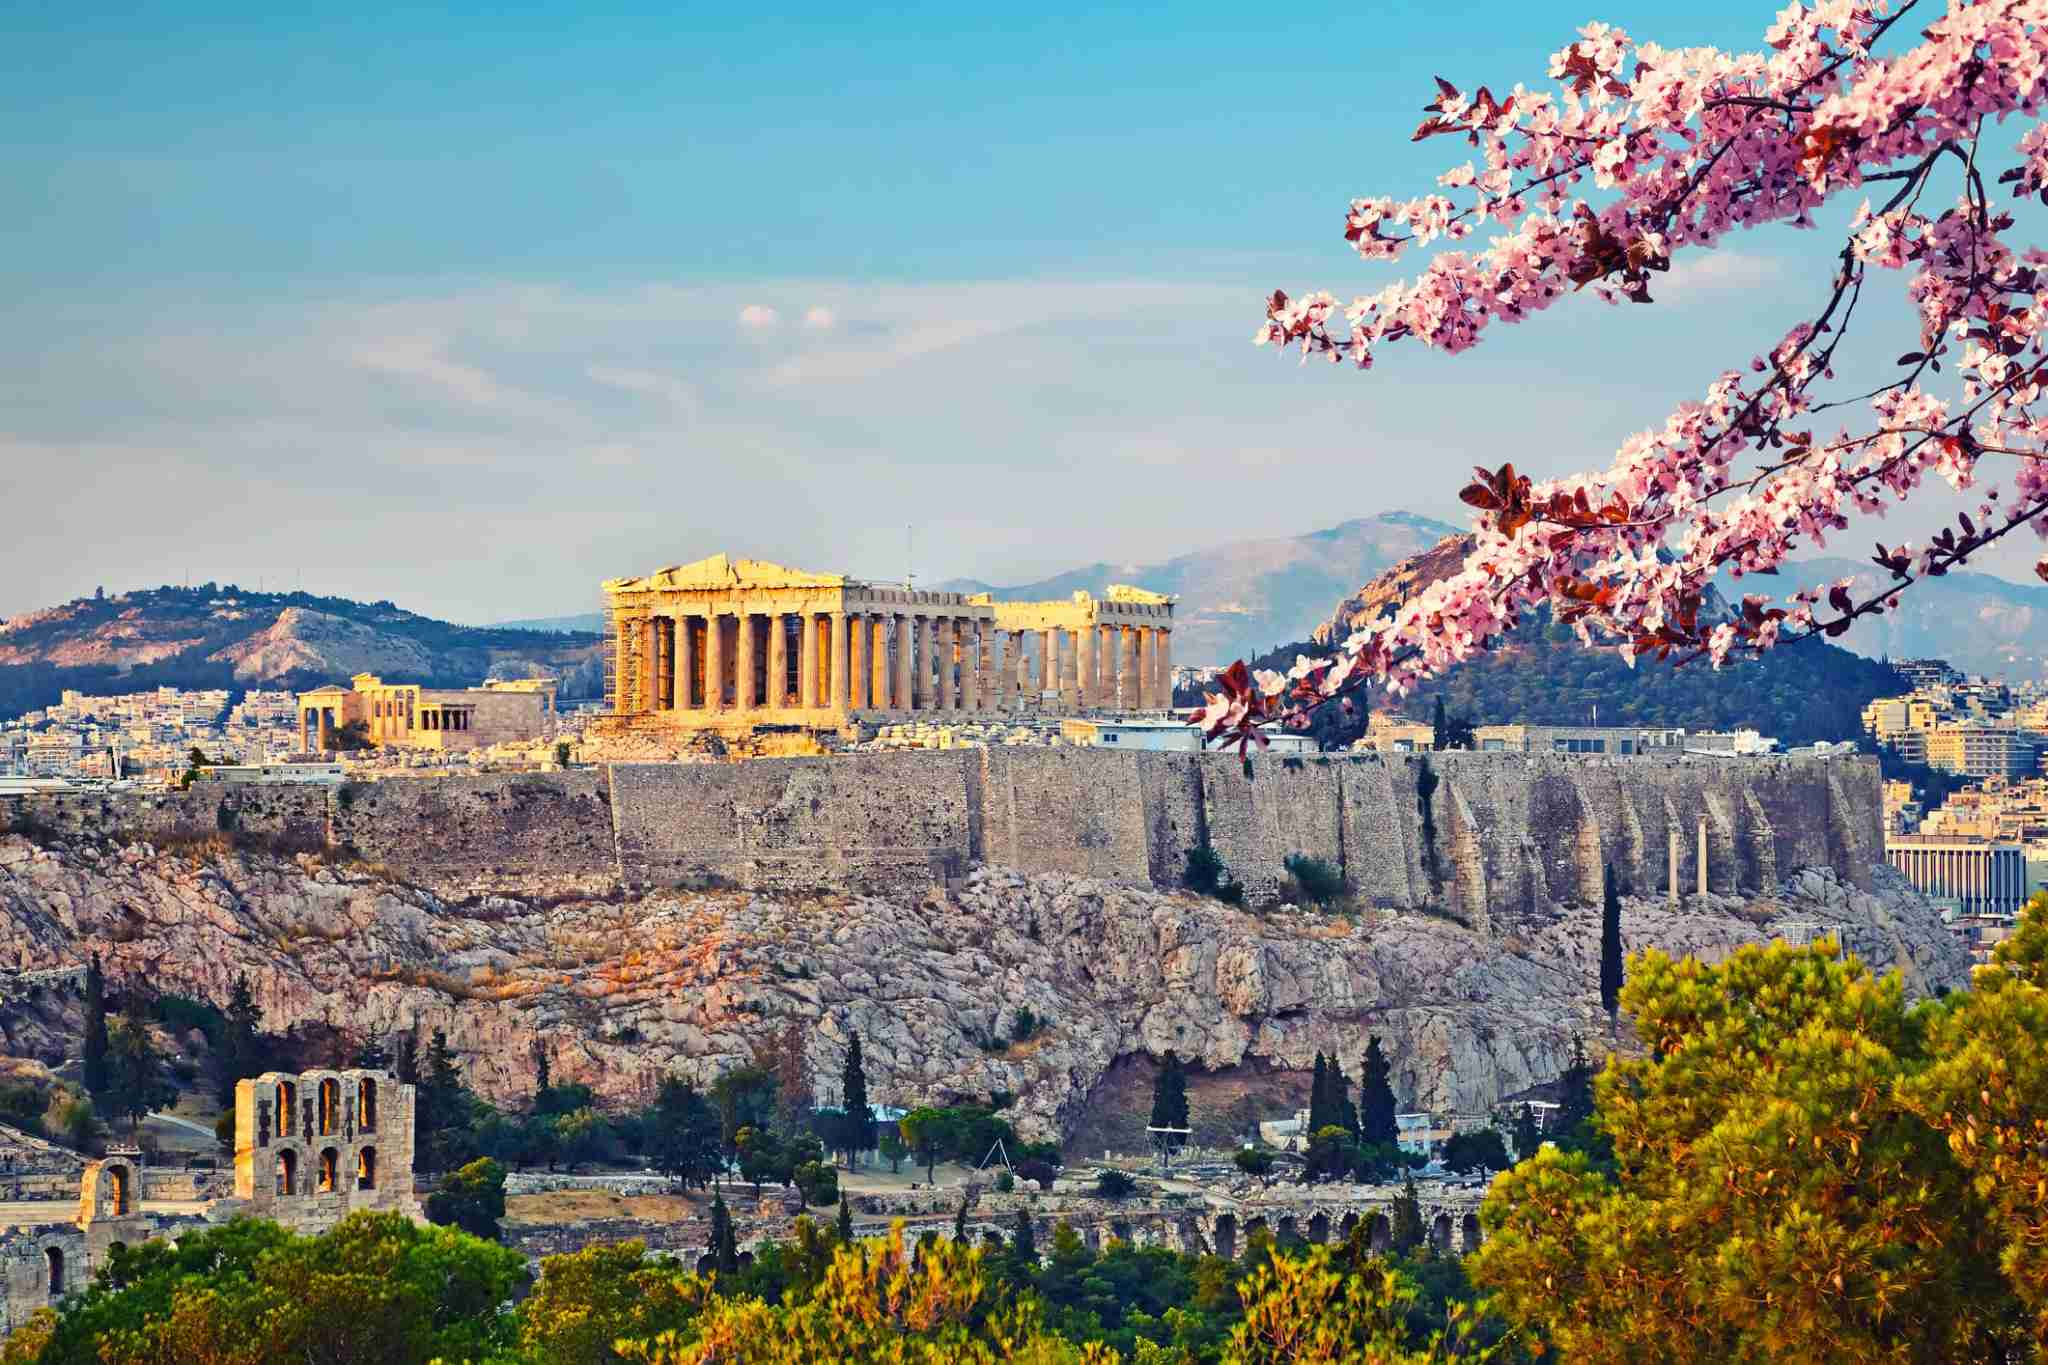 Norwegian will soon offer seasonal flights from New York City to Athens, Greece. (Photo by sborisov / Getty Images)